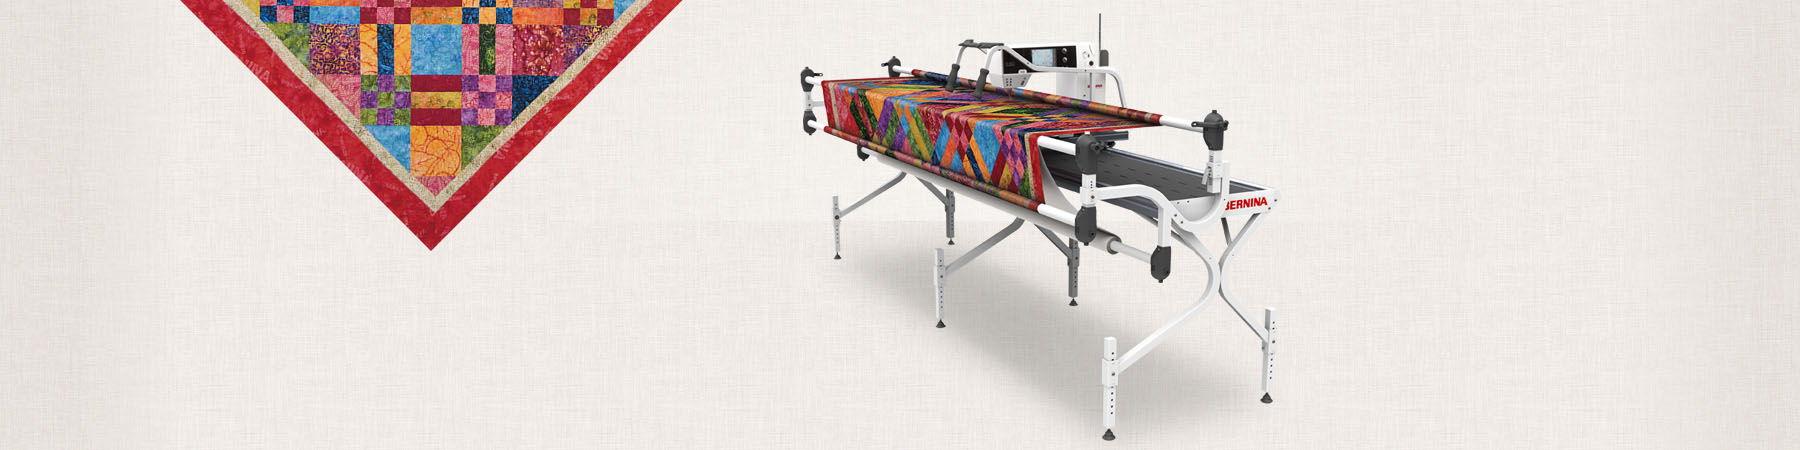 Bernina Quilt Frame The Ultimate Quilting Experience Bernina